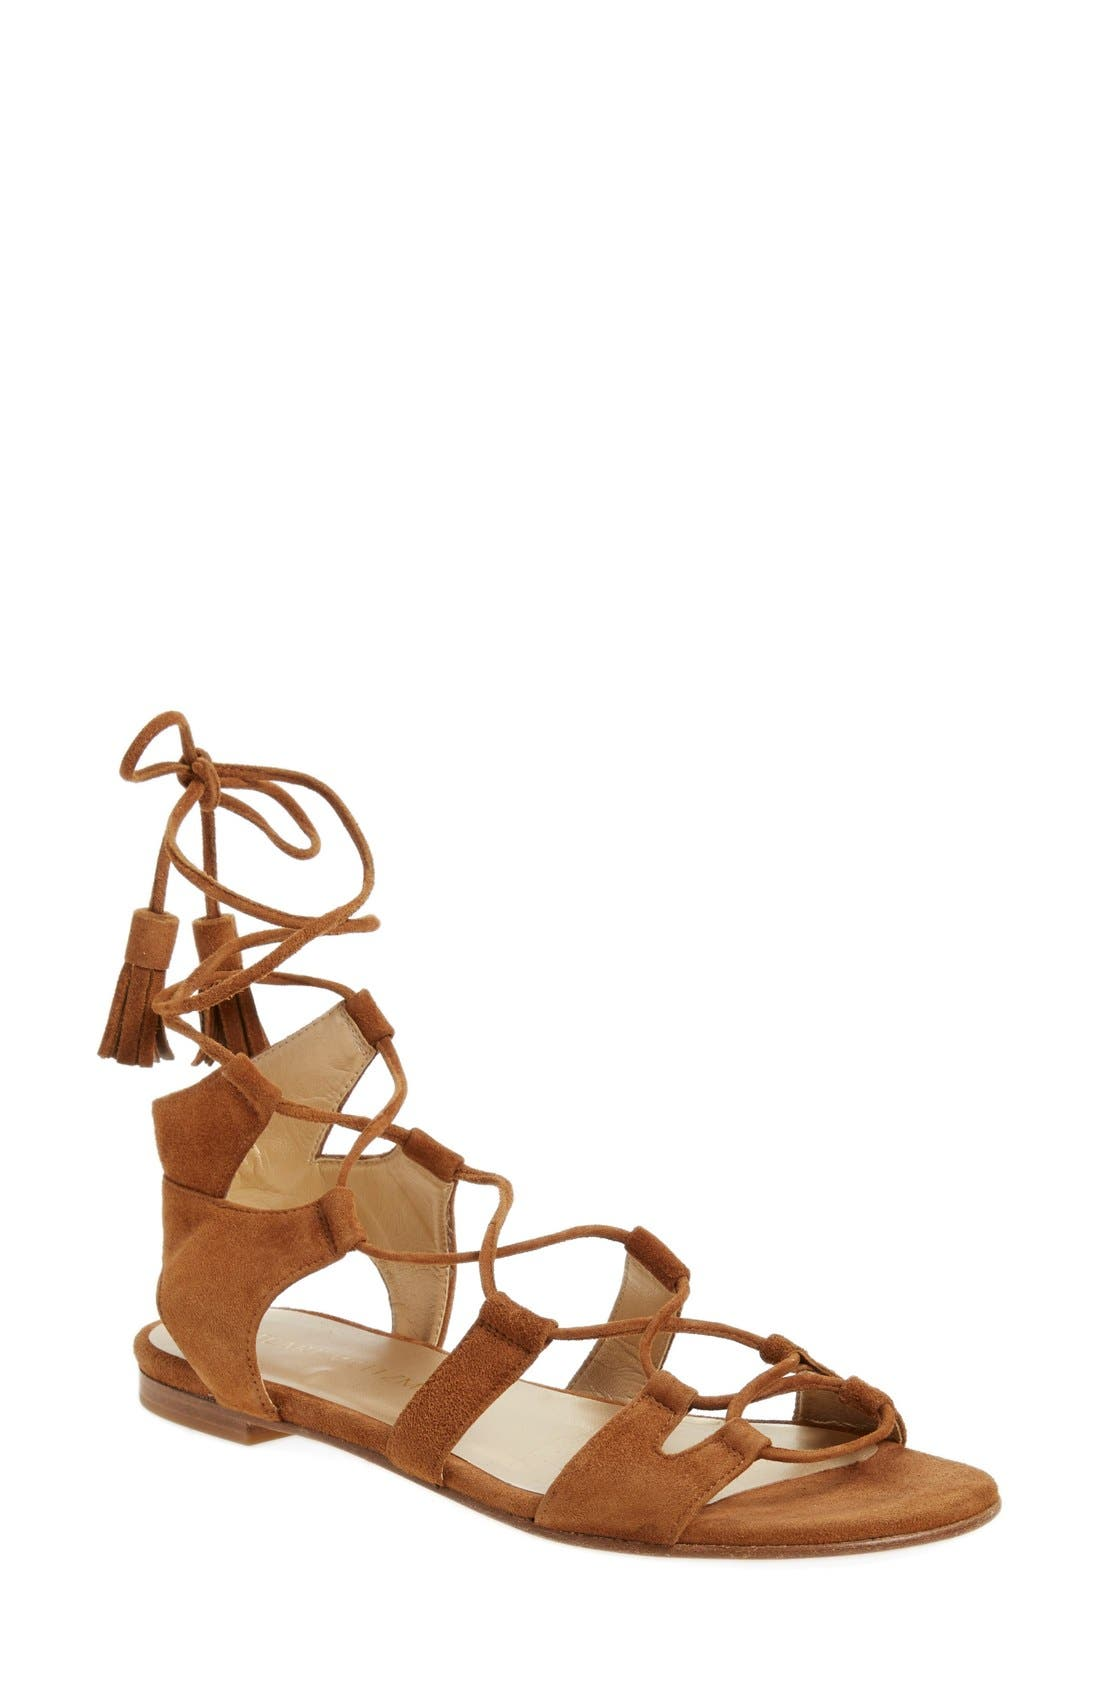 'Romanflat' Ghillie Sandal,                             Main thumbnail 1, color,                             250